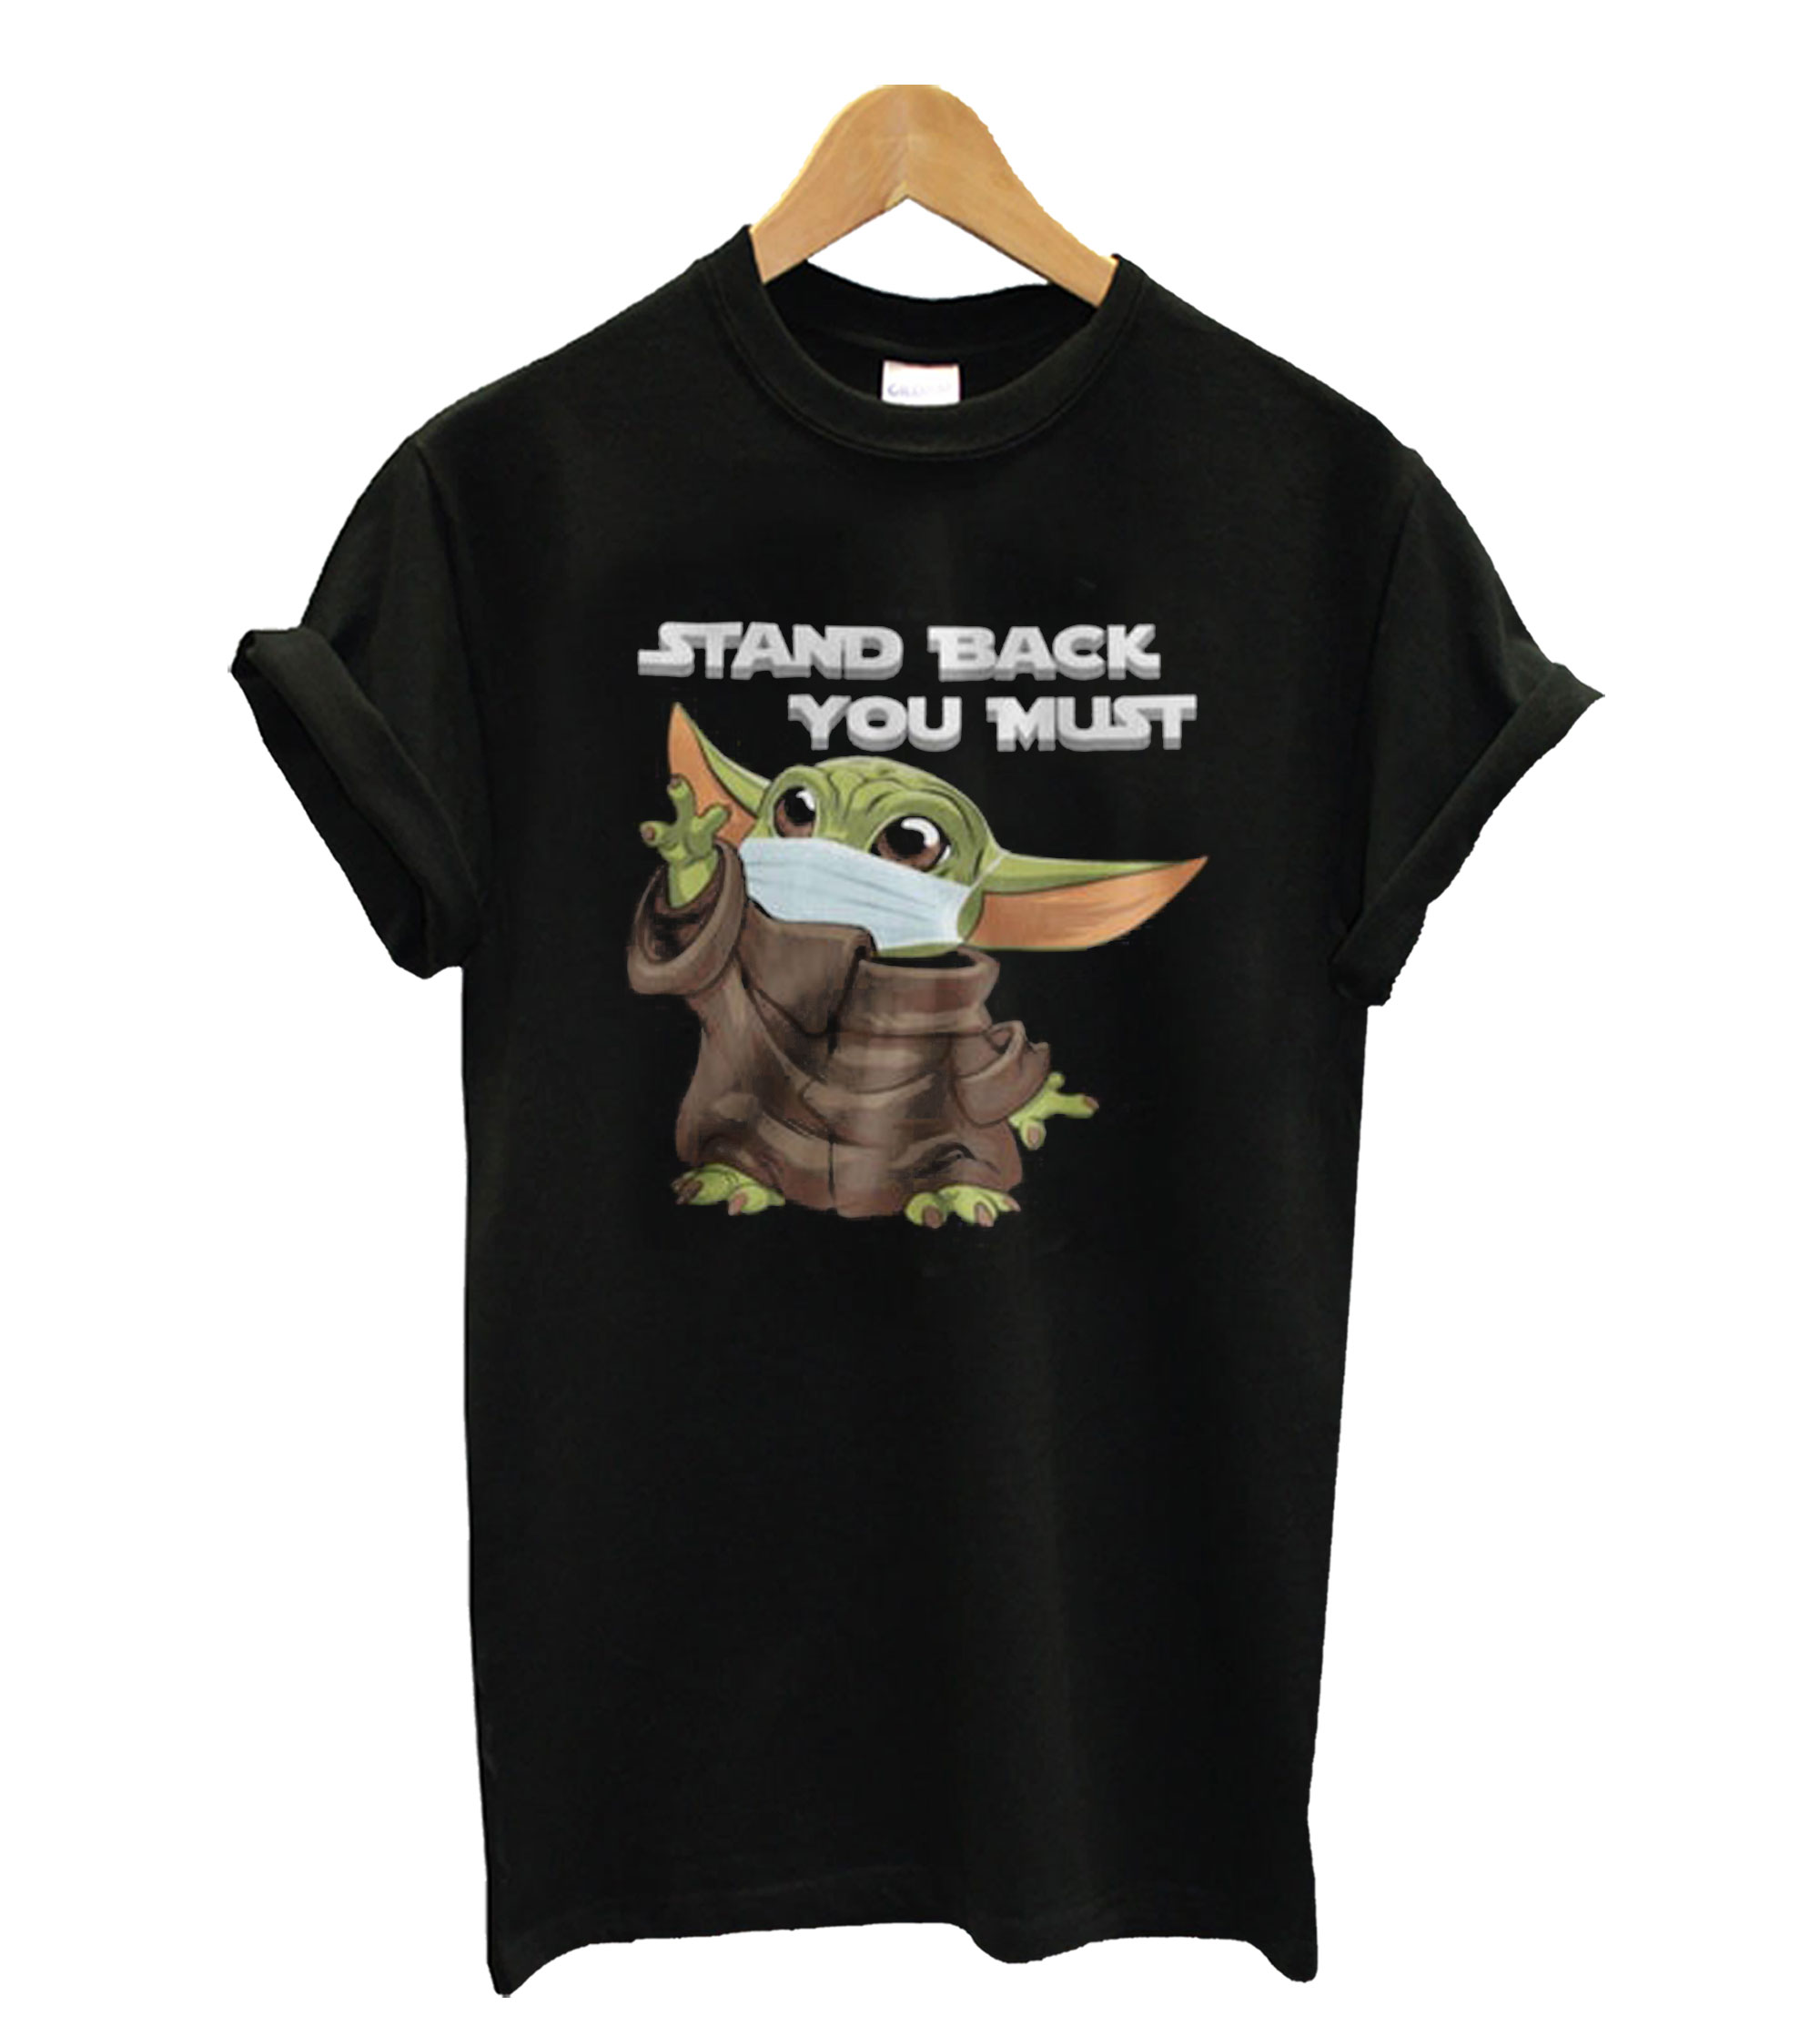 Stand Back You Must Baby Yoda T-Shirt